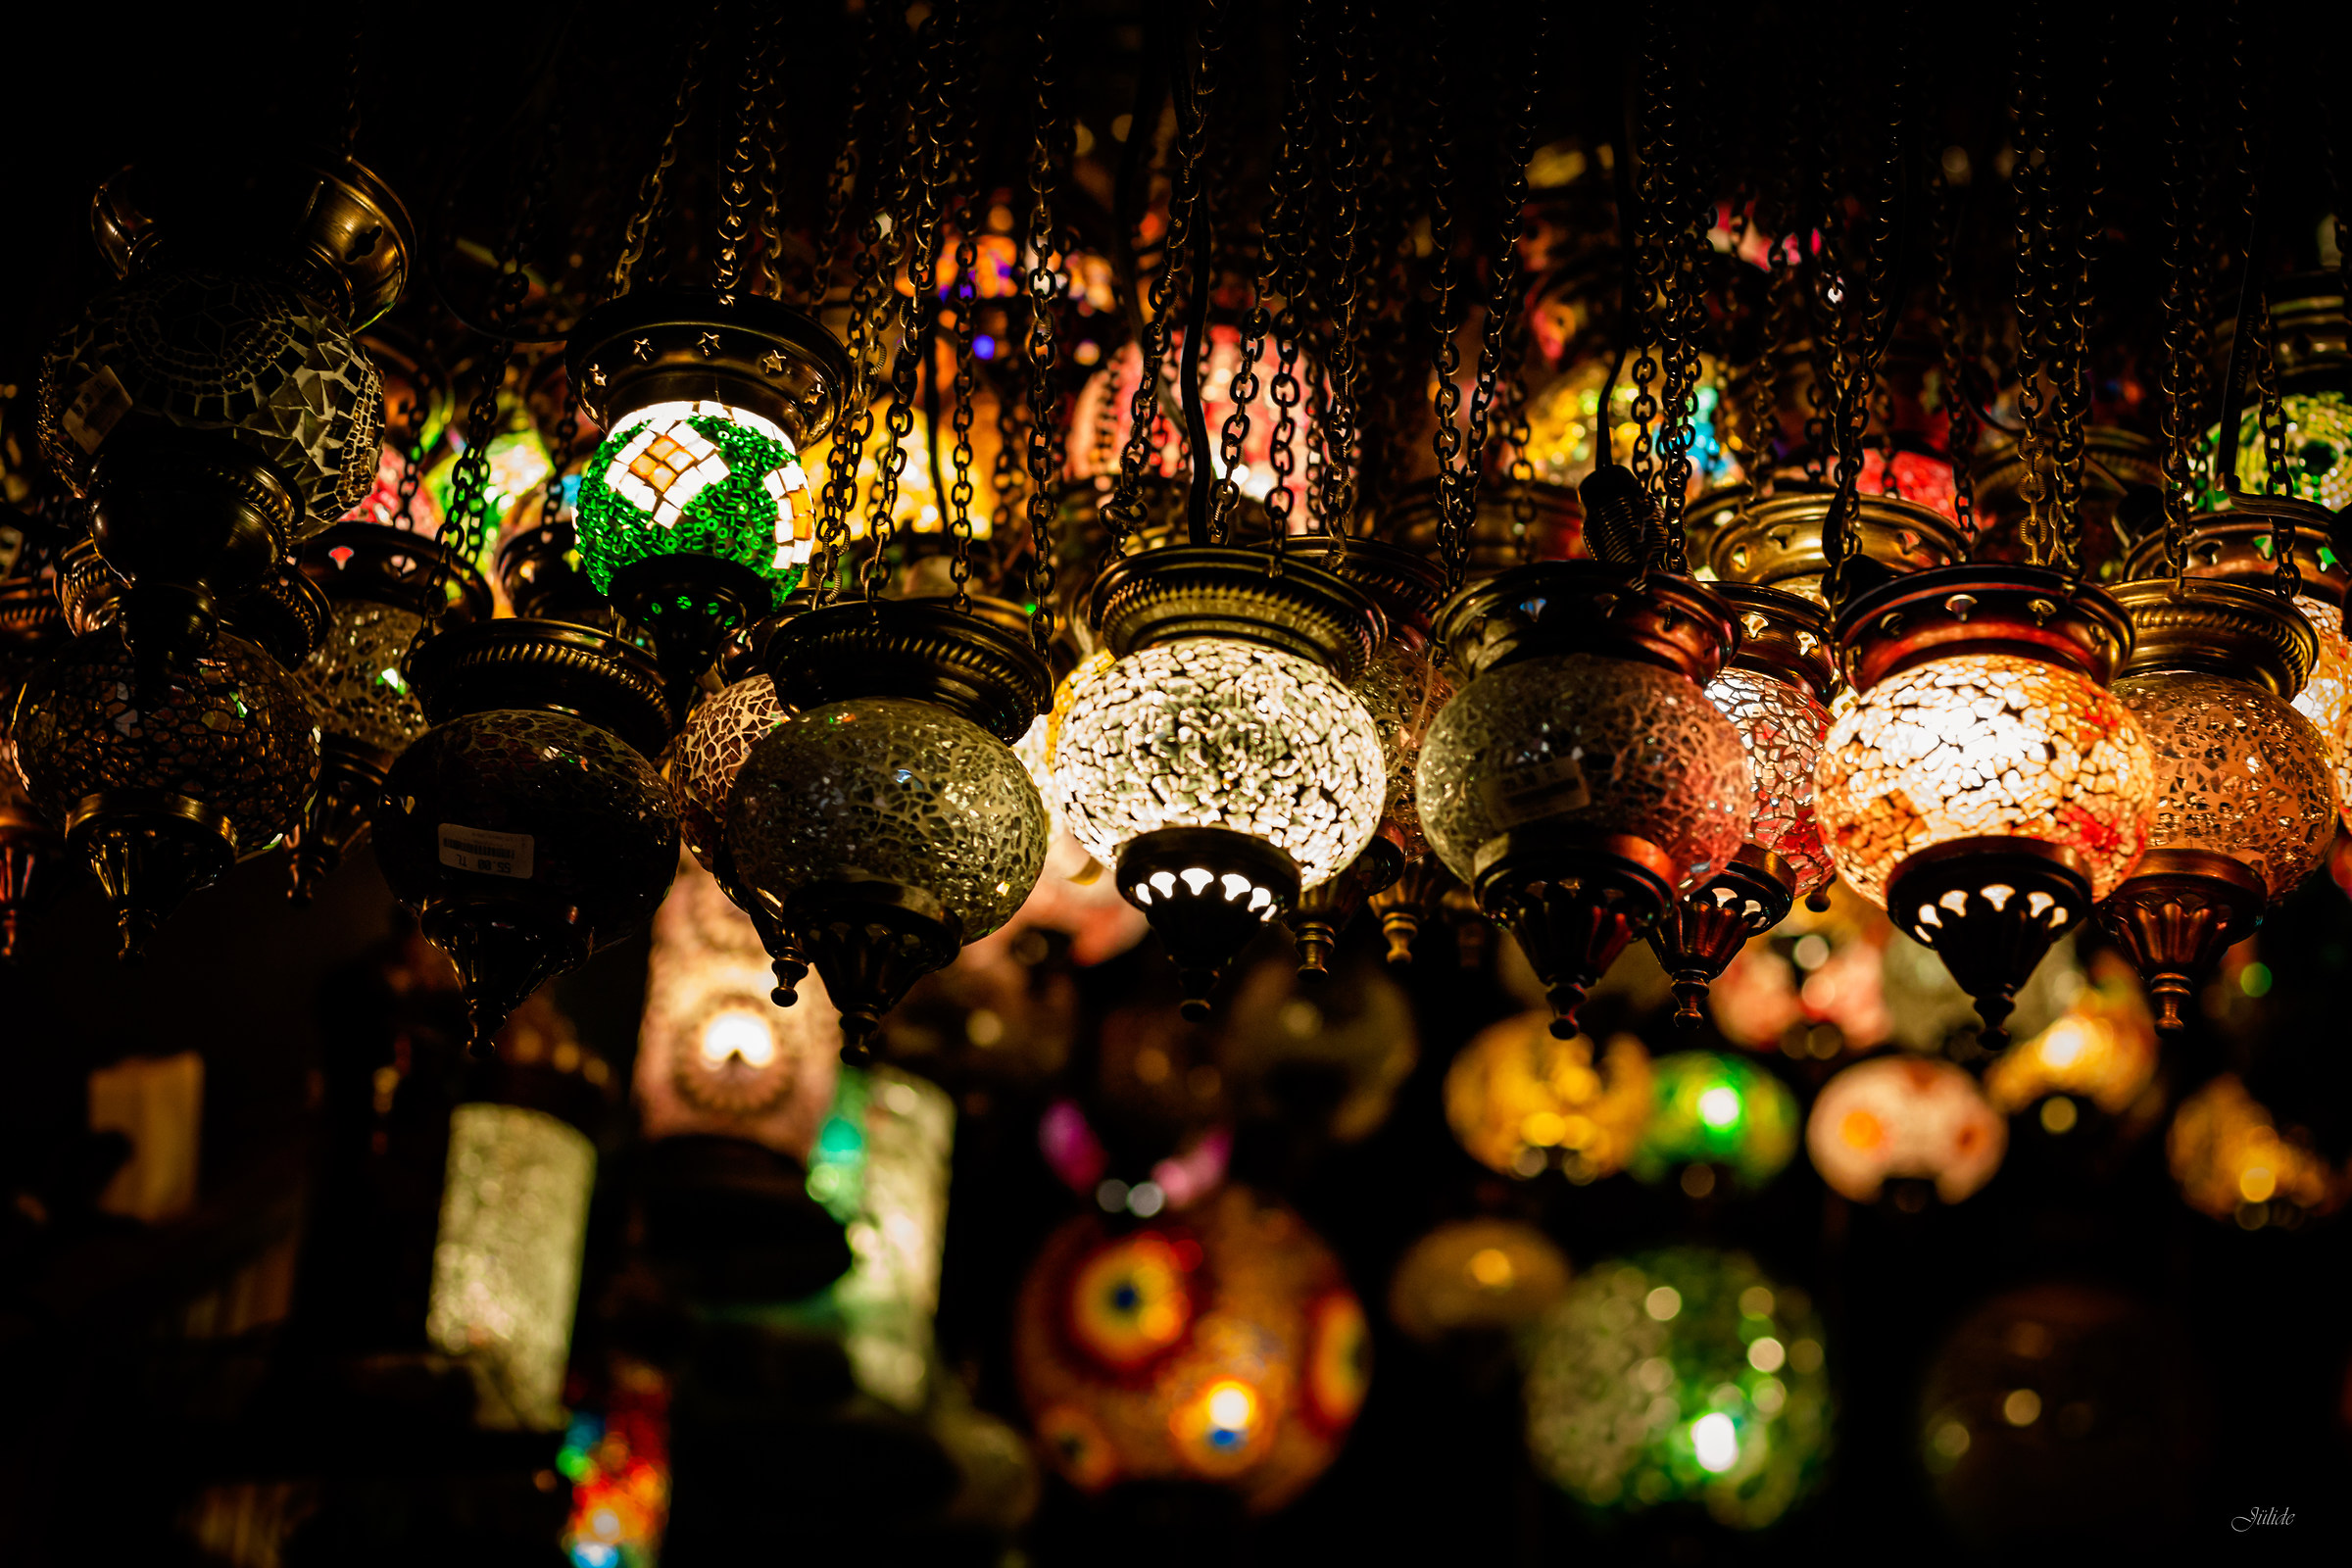 Lamps and colors...